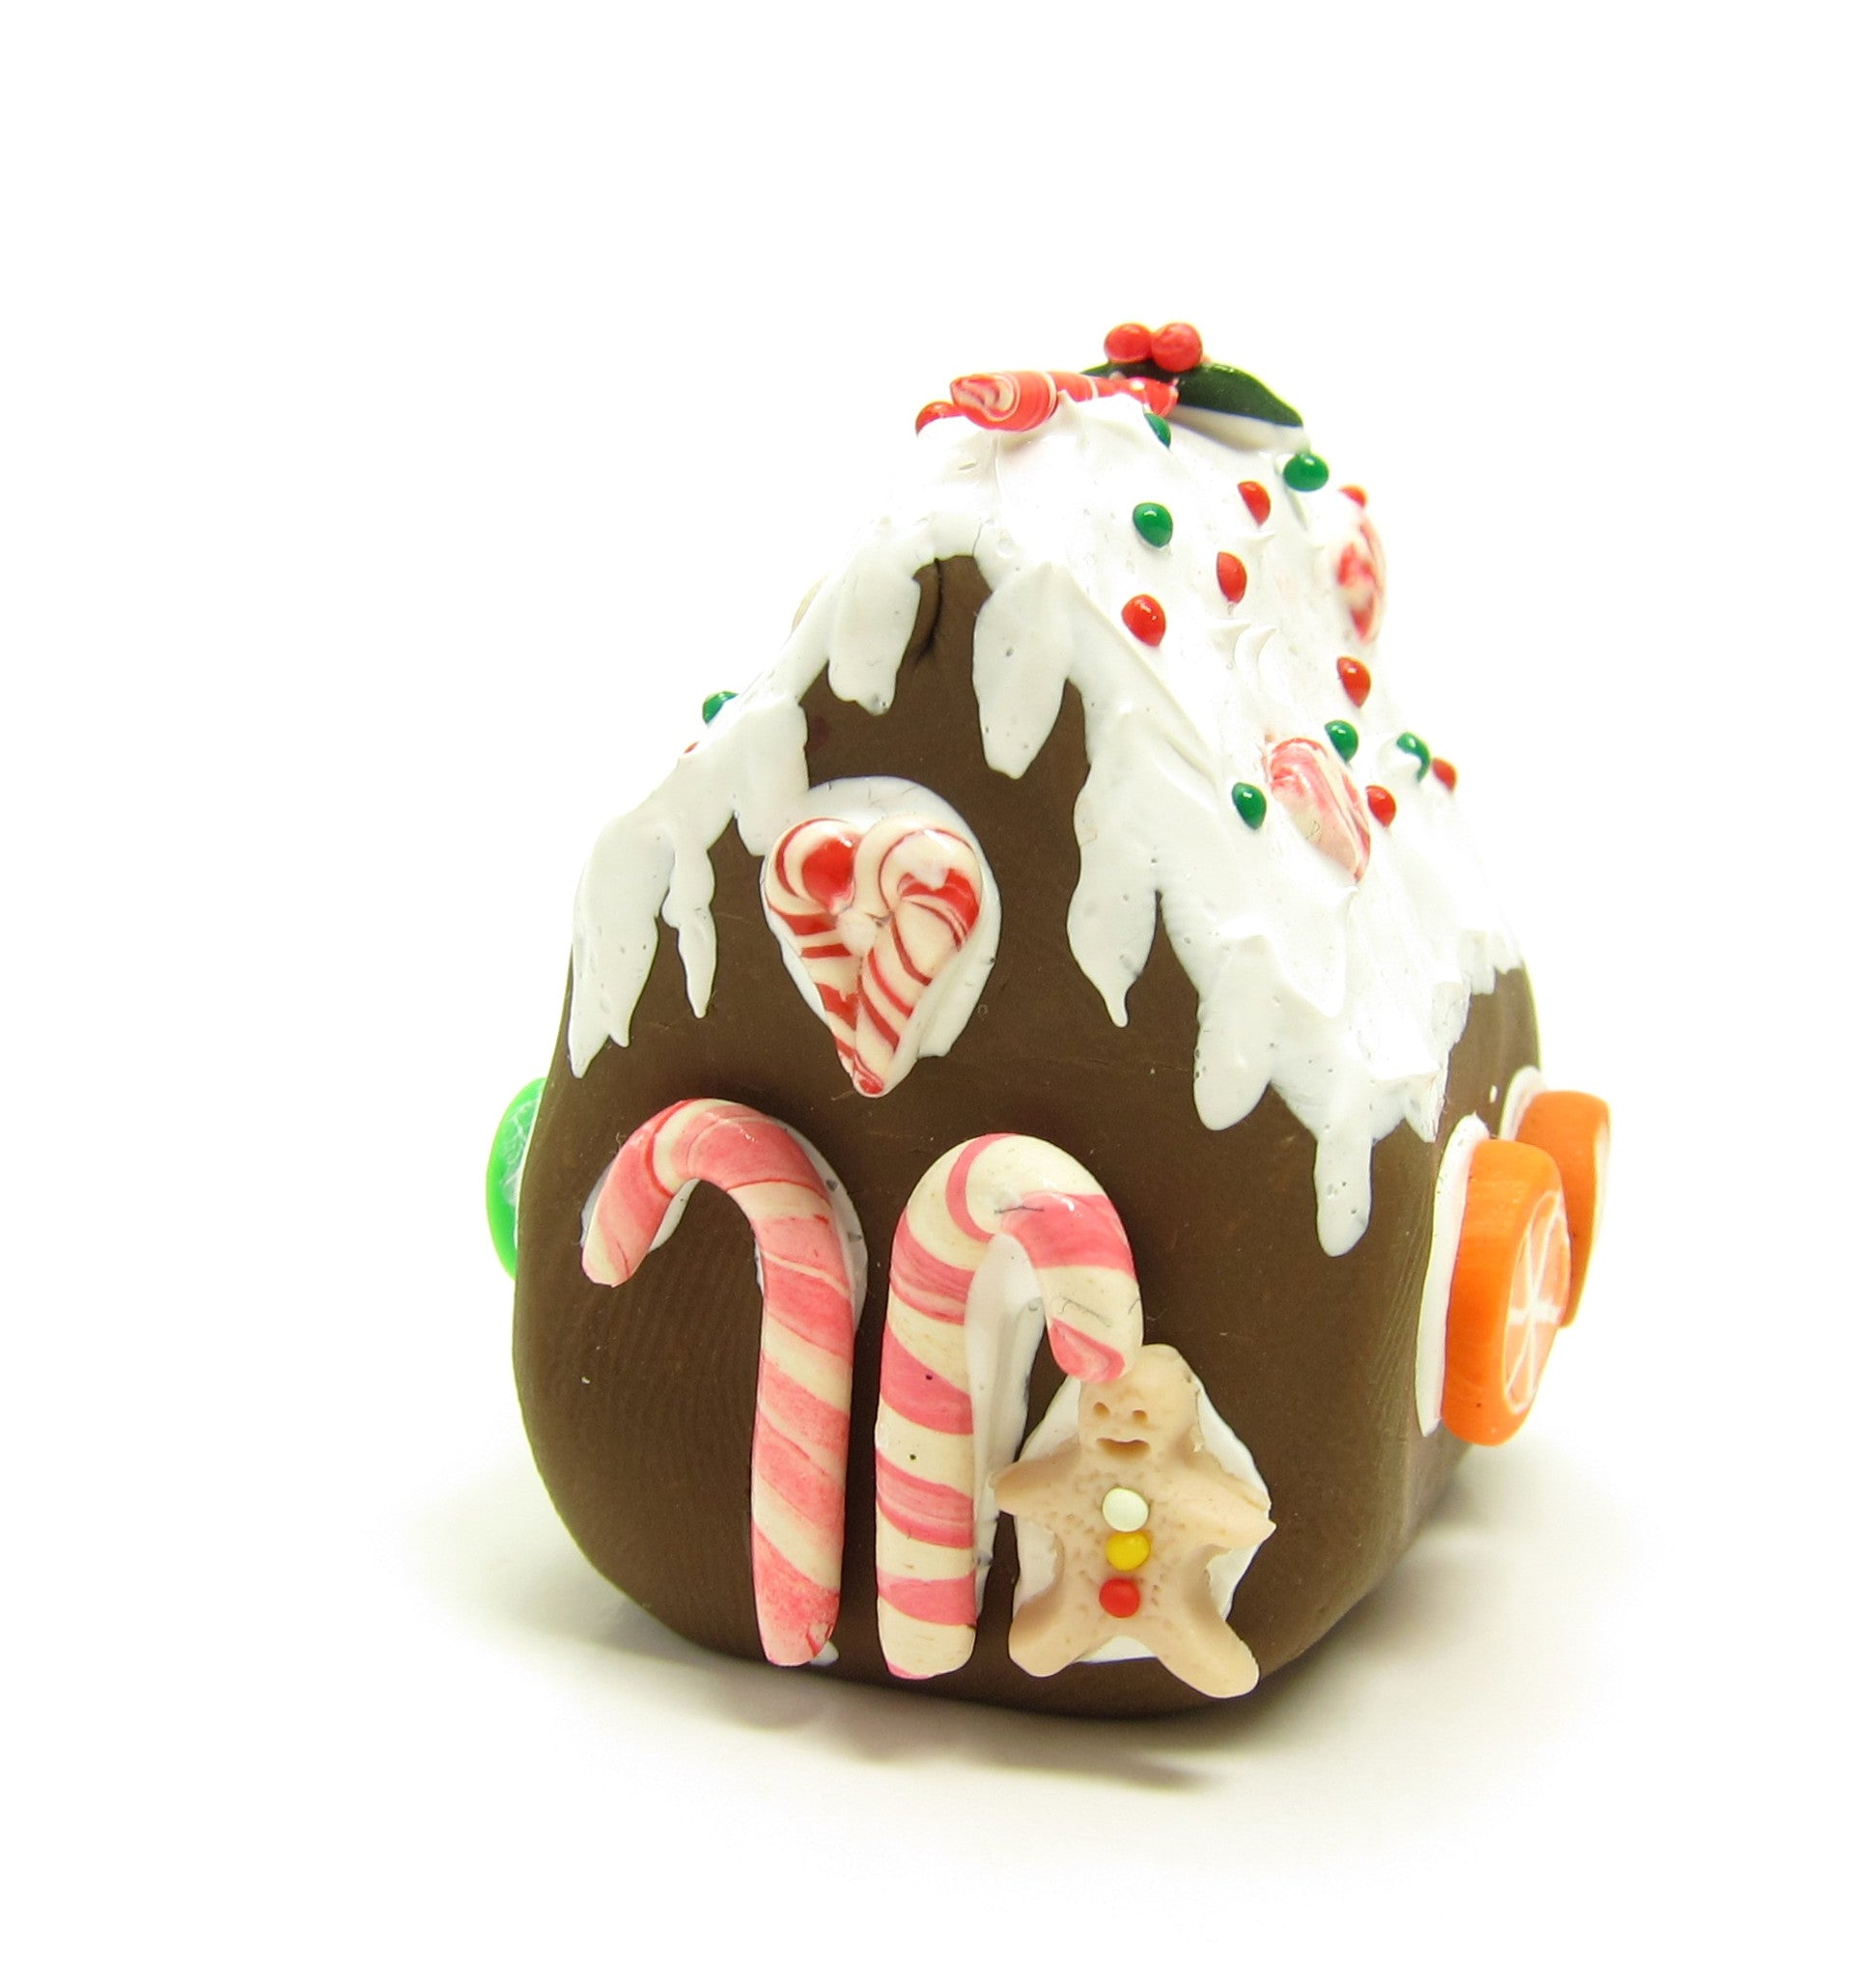 Miniature polymer clay gingerbread house with candy